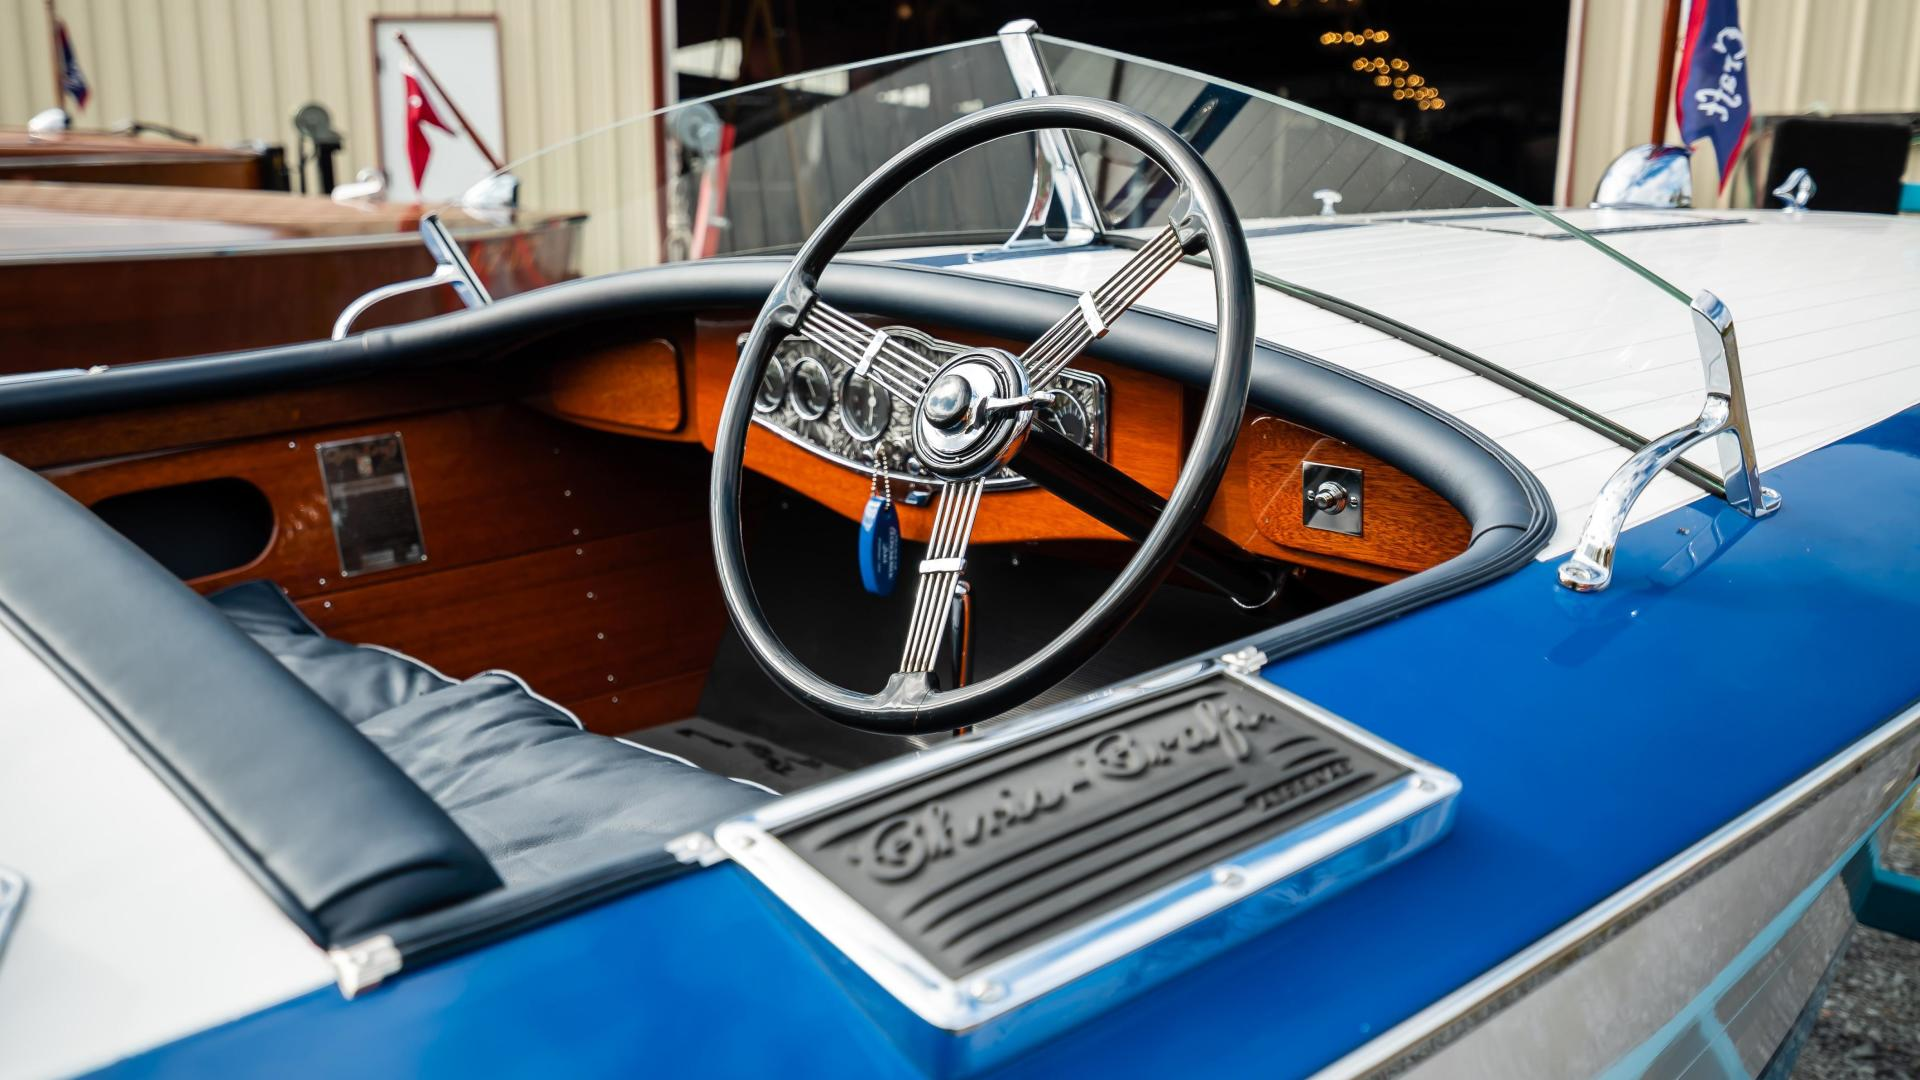 Chris-Craft-Special Race boat 1937 -Clayton-New York-United States-1546452 | Thumbnail